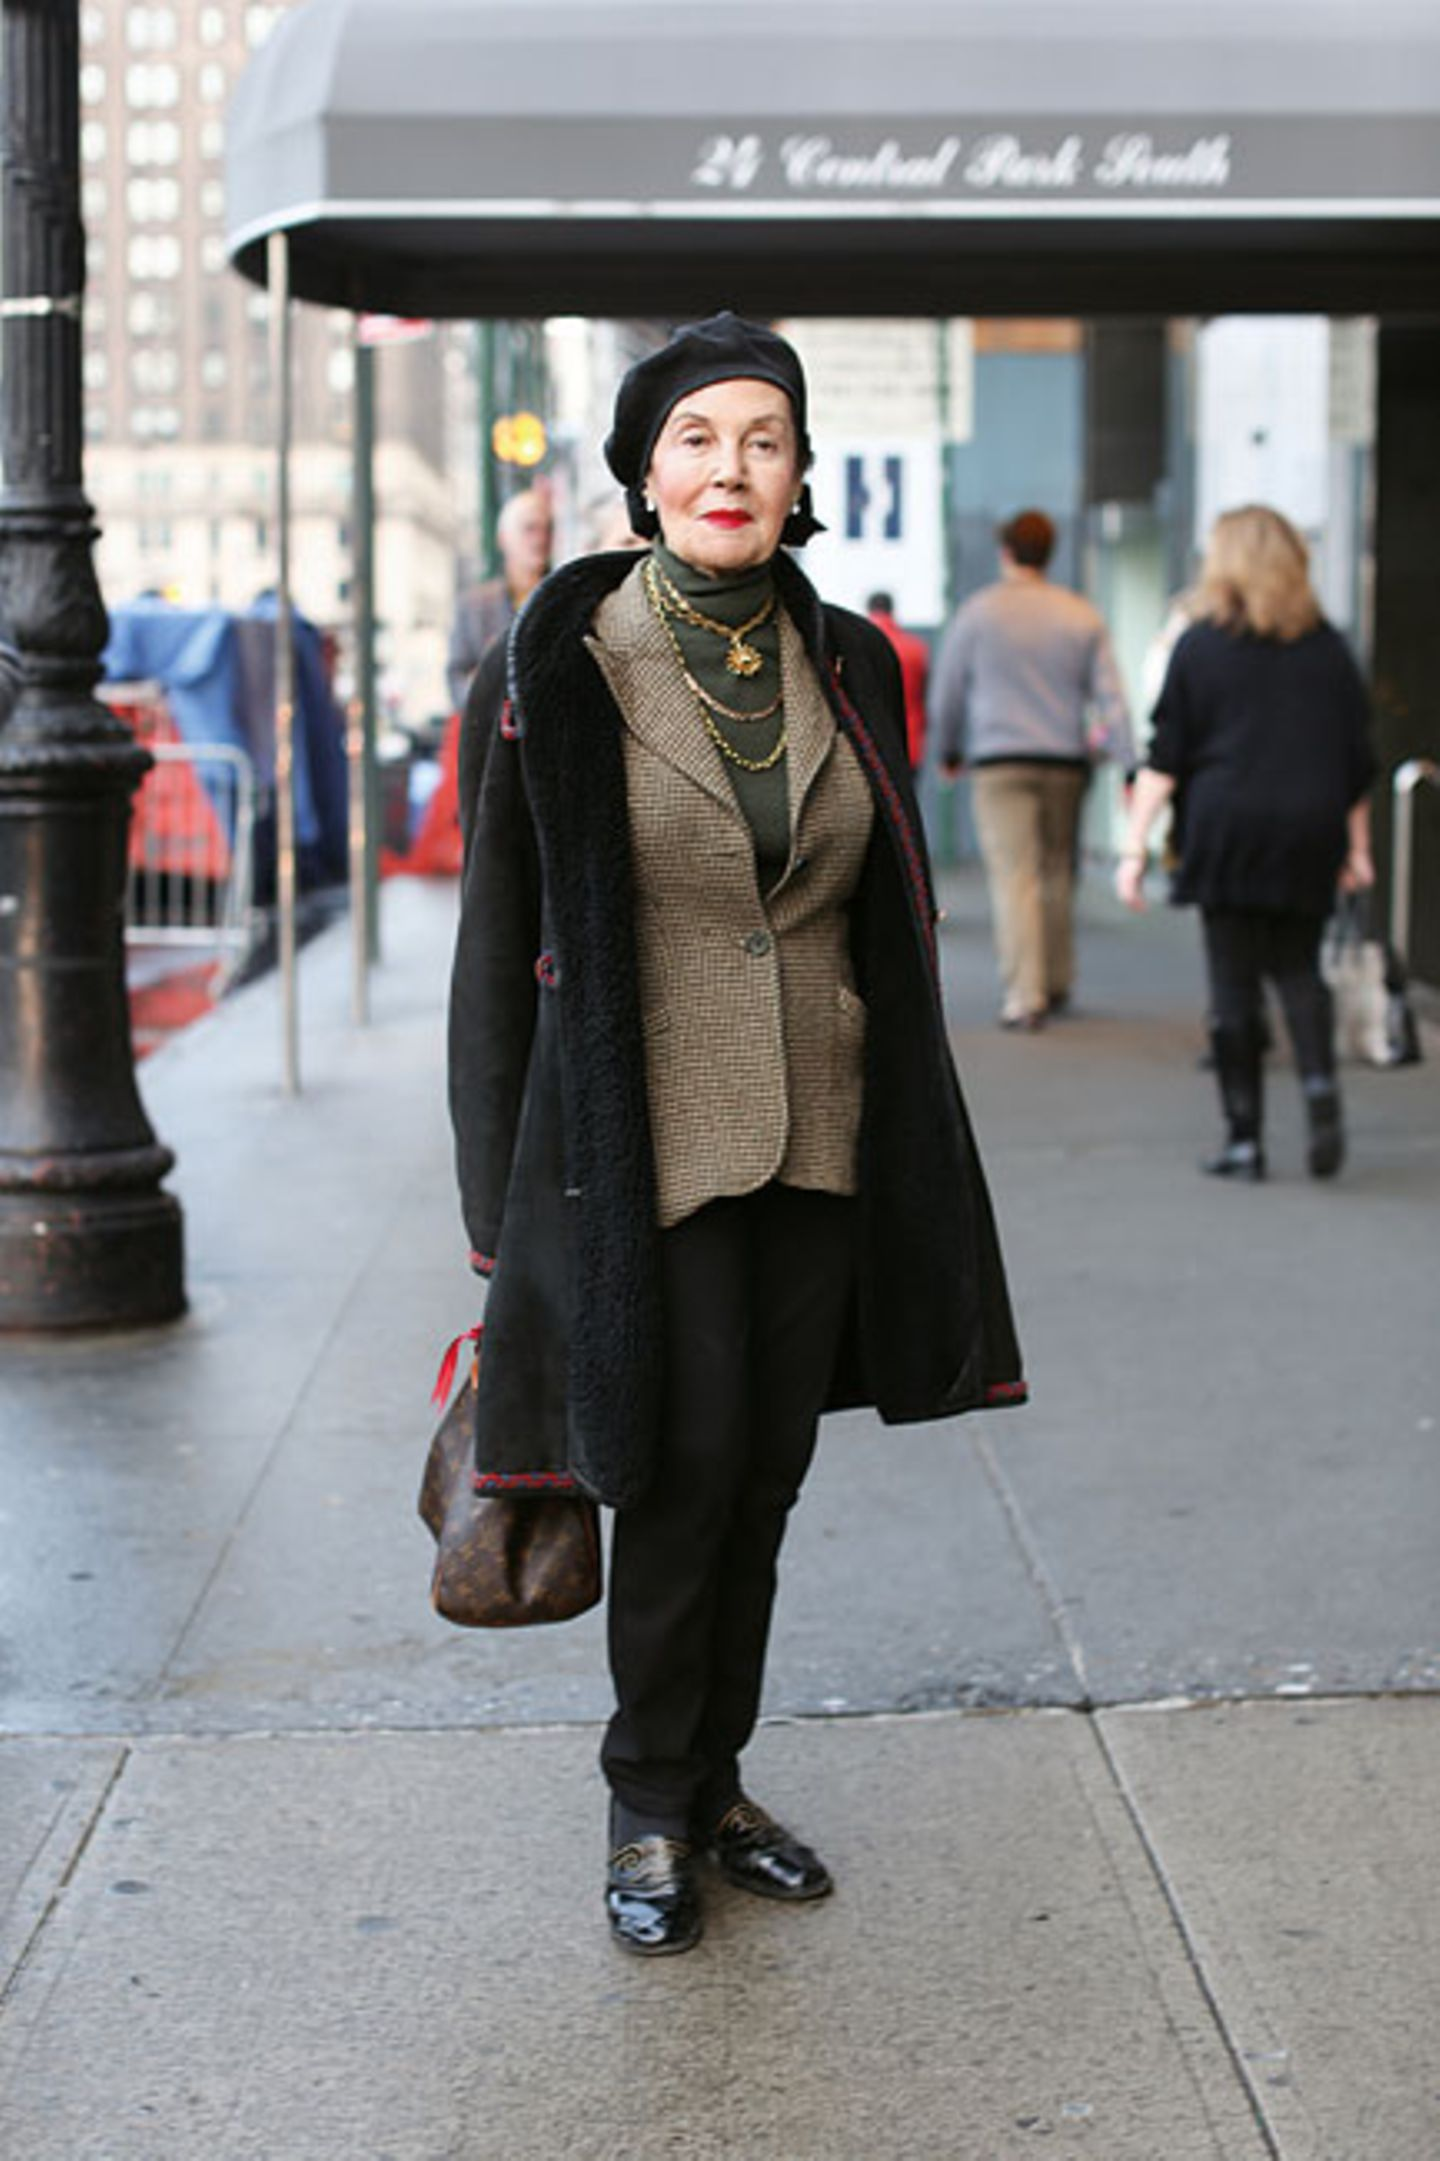 Humans of New York, 2. Story